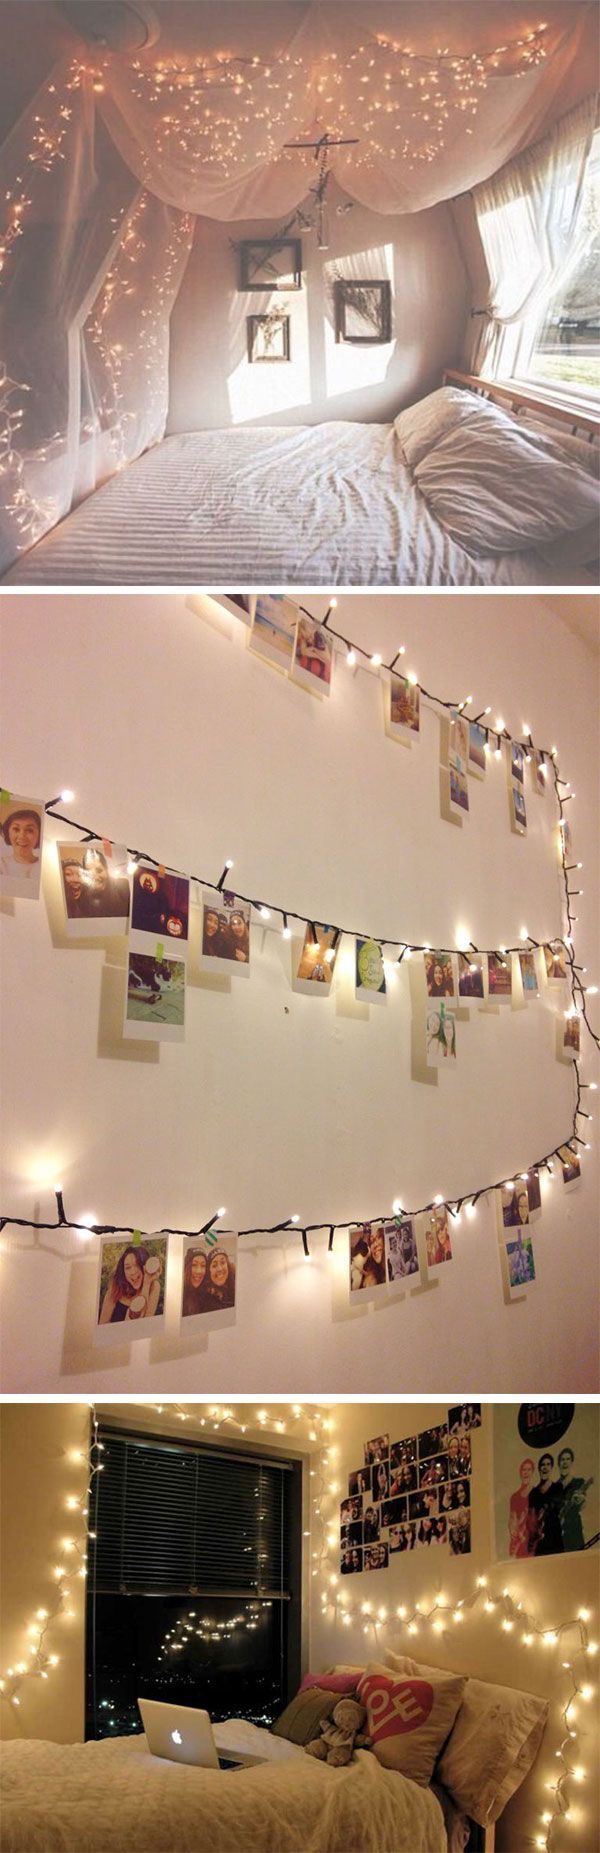 Dream bedrooms for teenage girls tumblr - 13 Ways To Use Fairy Lights To Make Your Home Look Magical Room Decor Diy Lightsdiy Home Decor For Teens Tumblr Girls Bedroombedroom